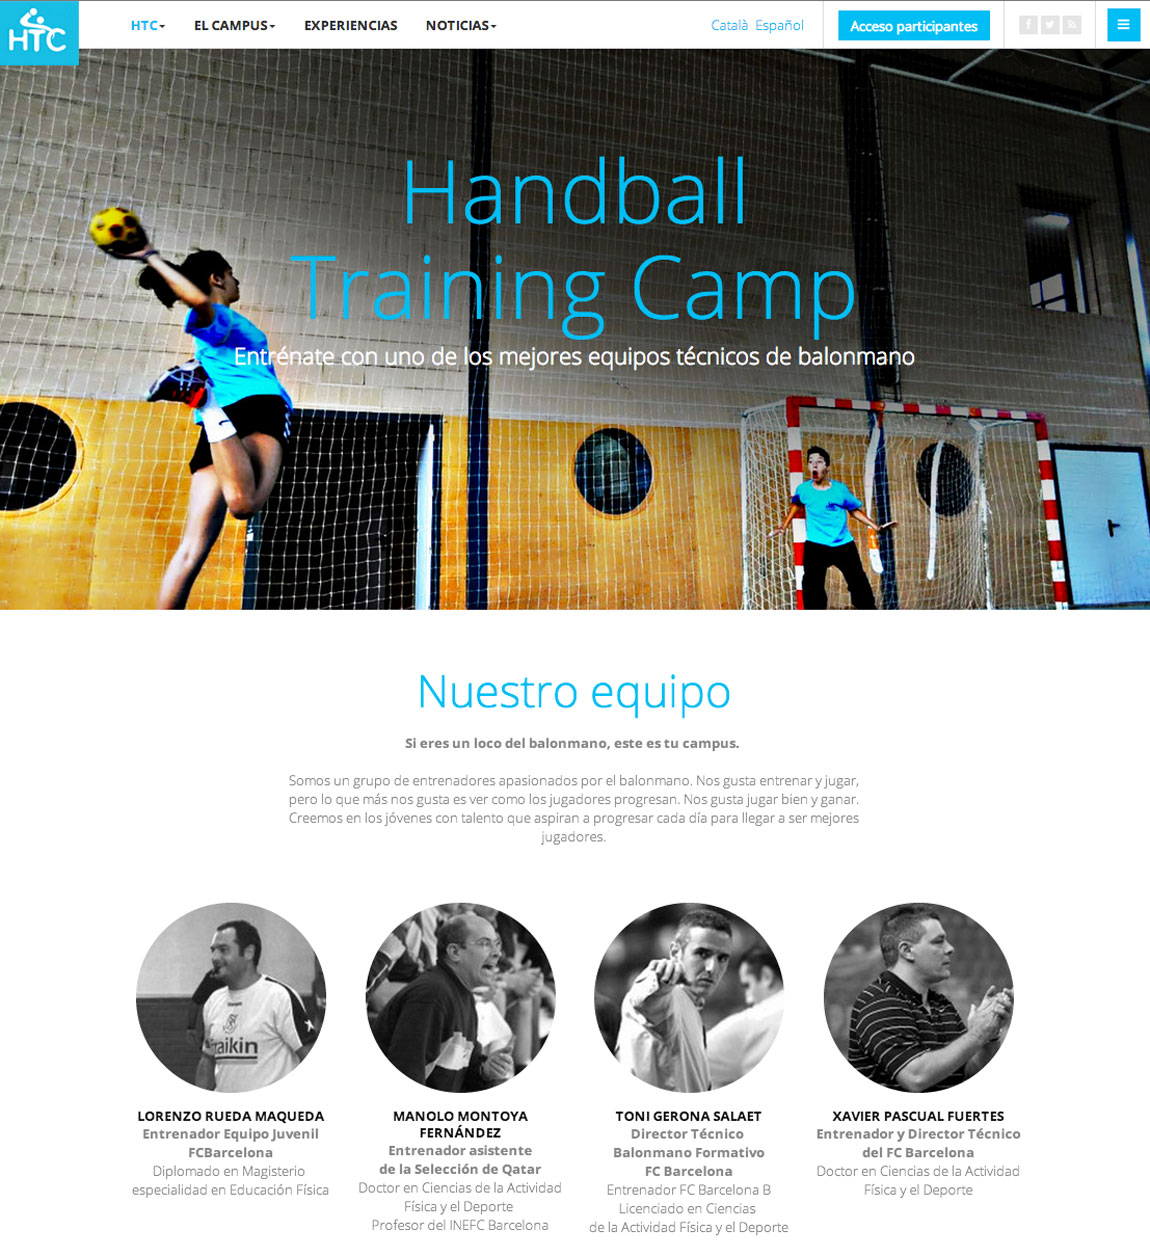 HANDBALL TRAINING CAMP. Una web de Dinàmic Enginy